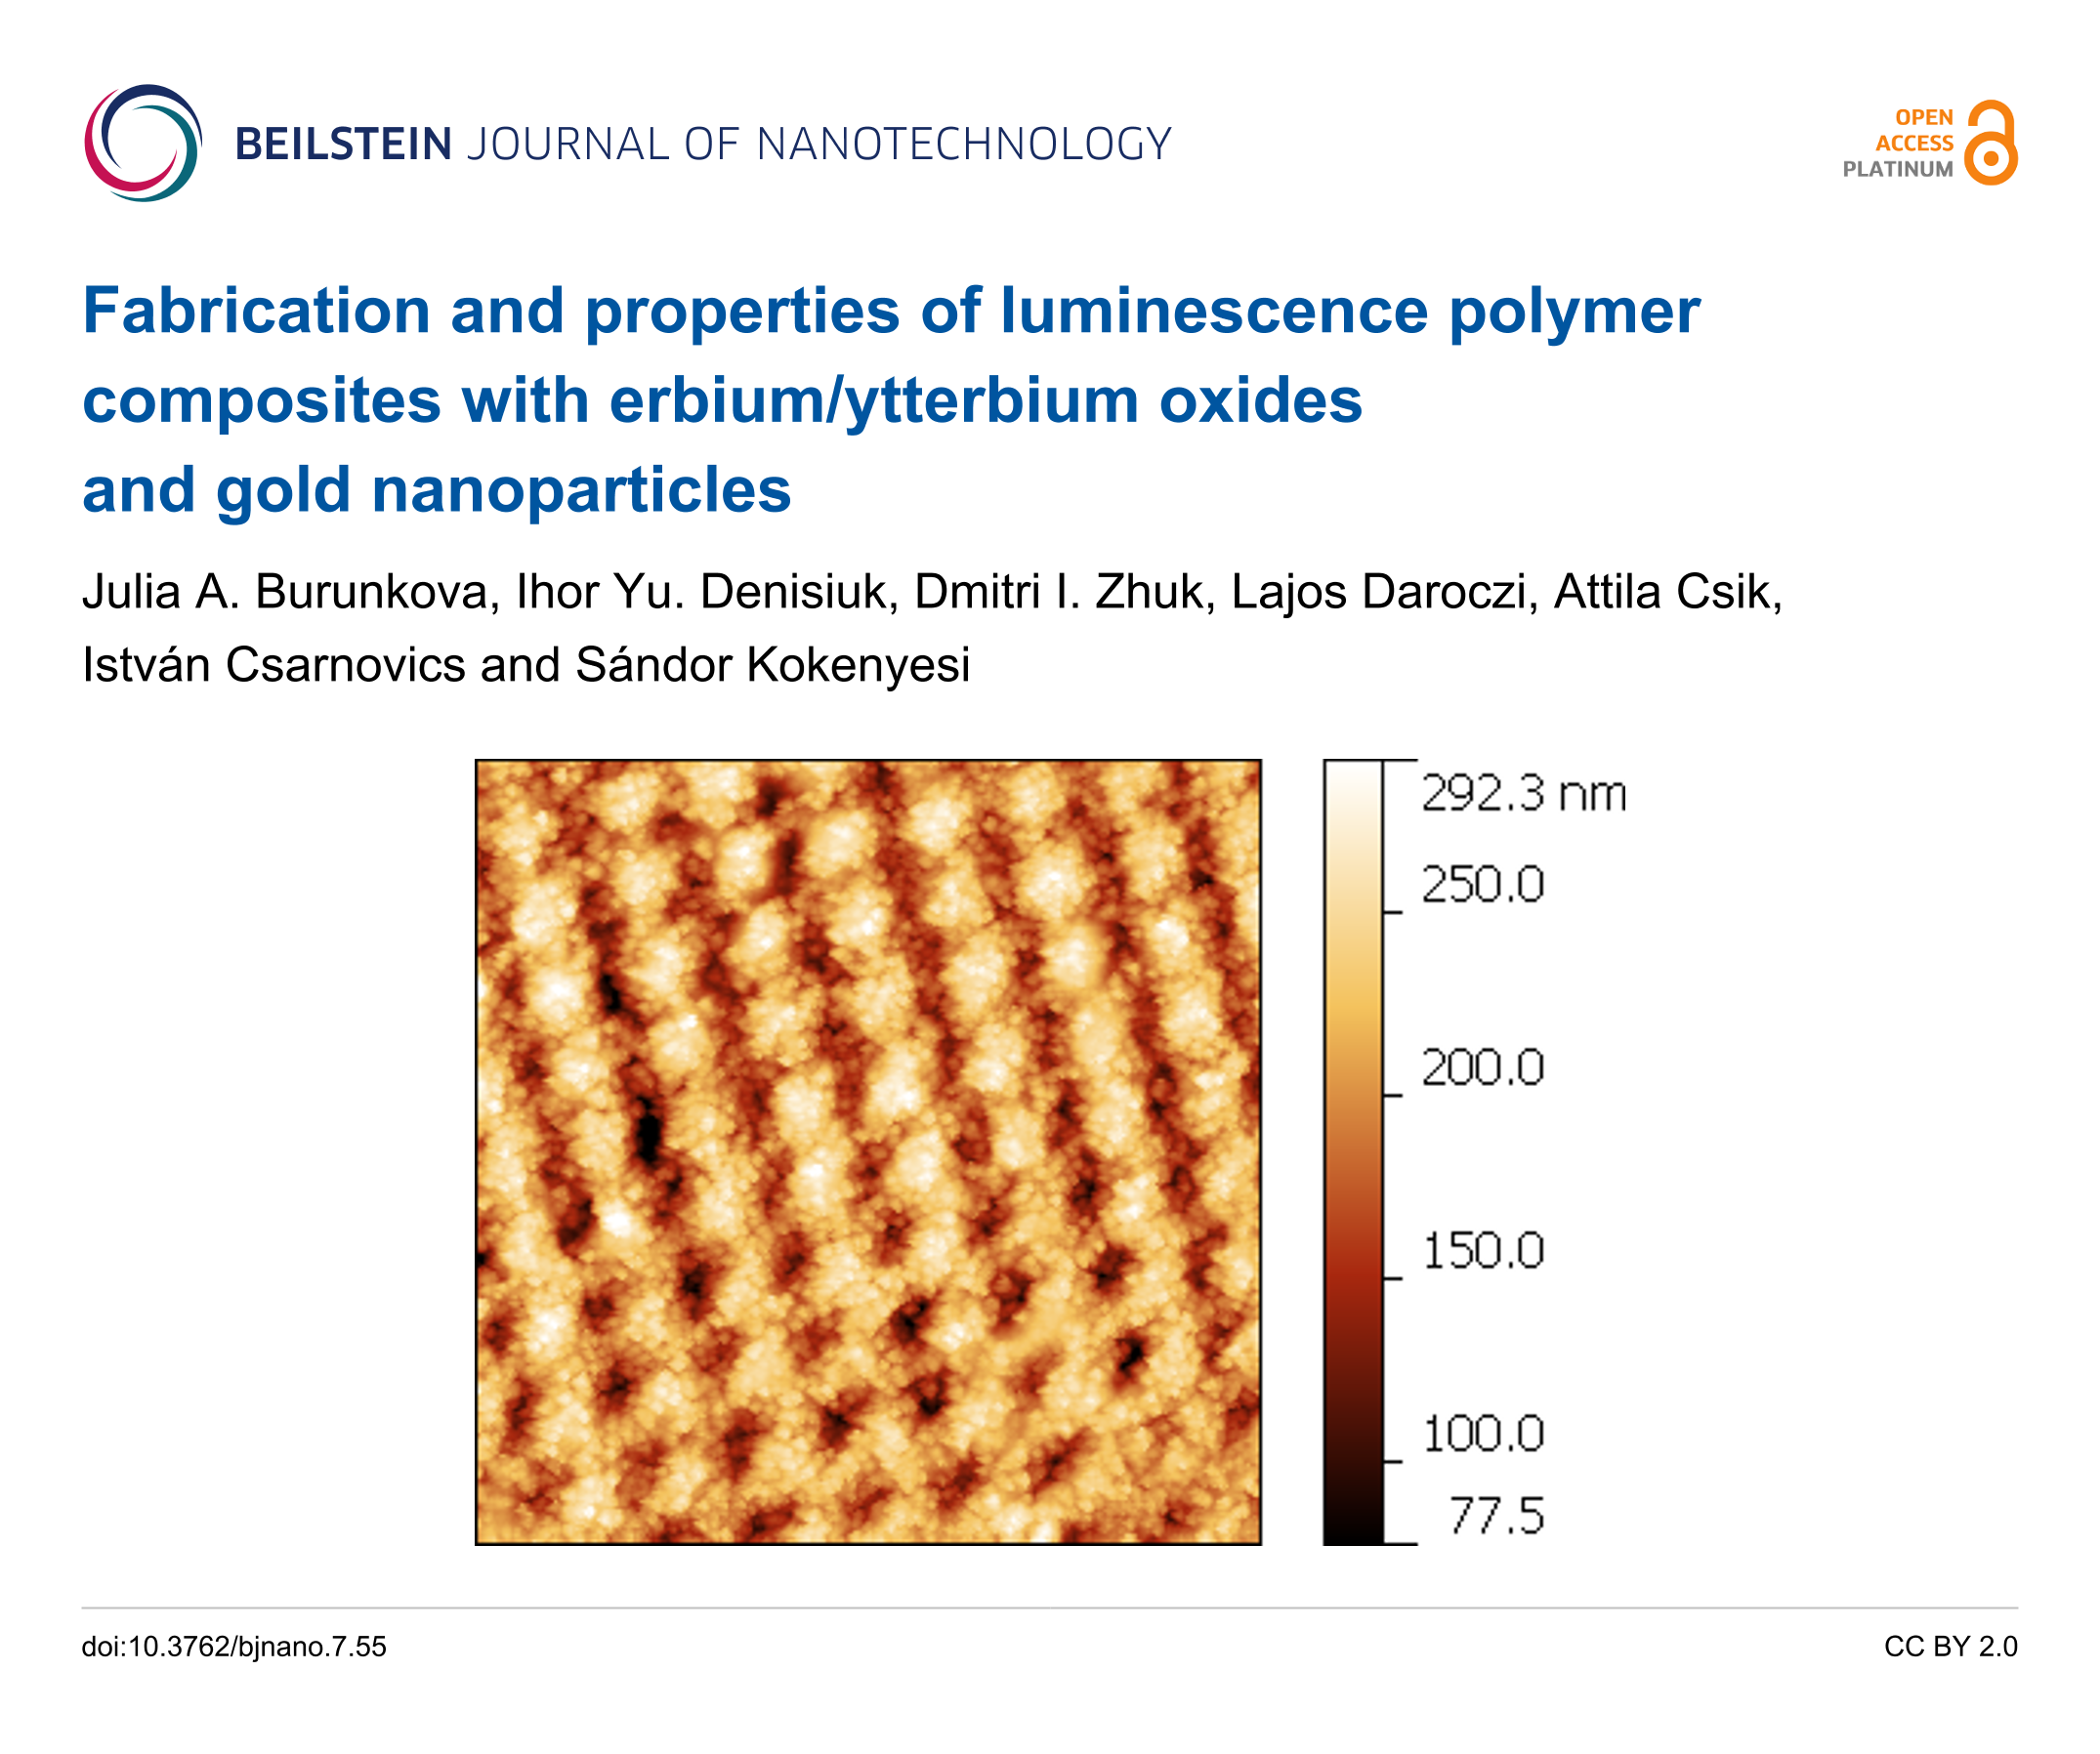 Fabrication and properties of luminescence polymer posites with